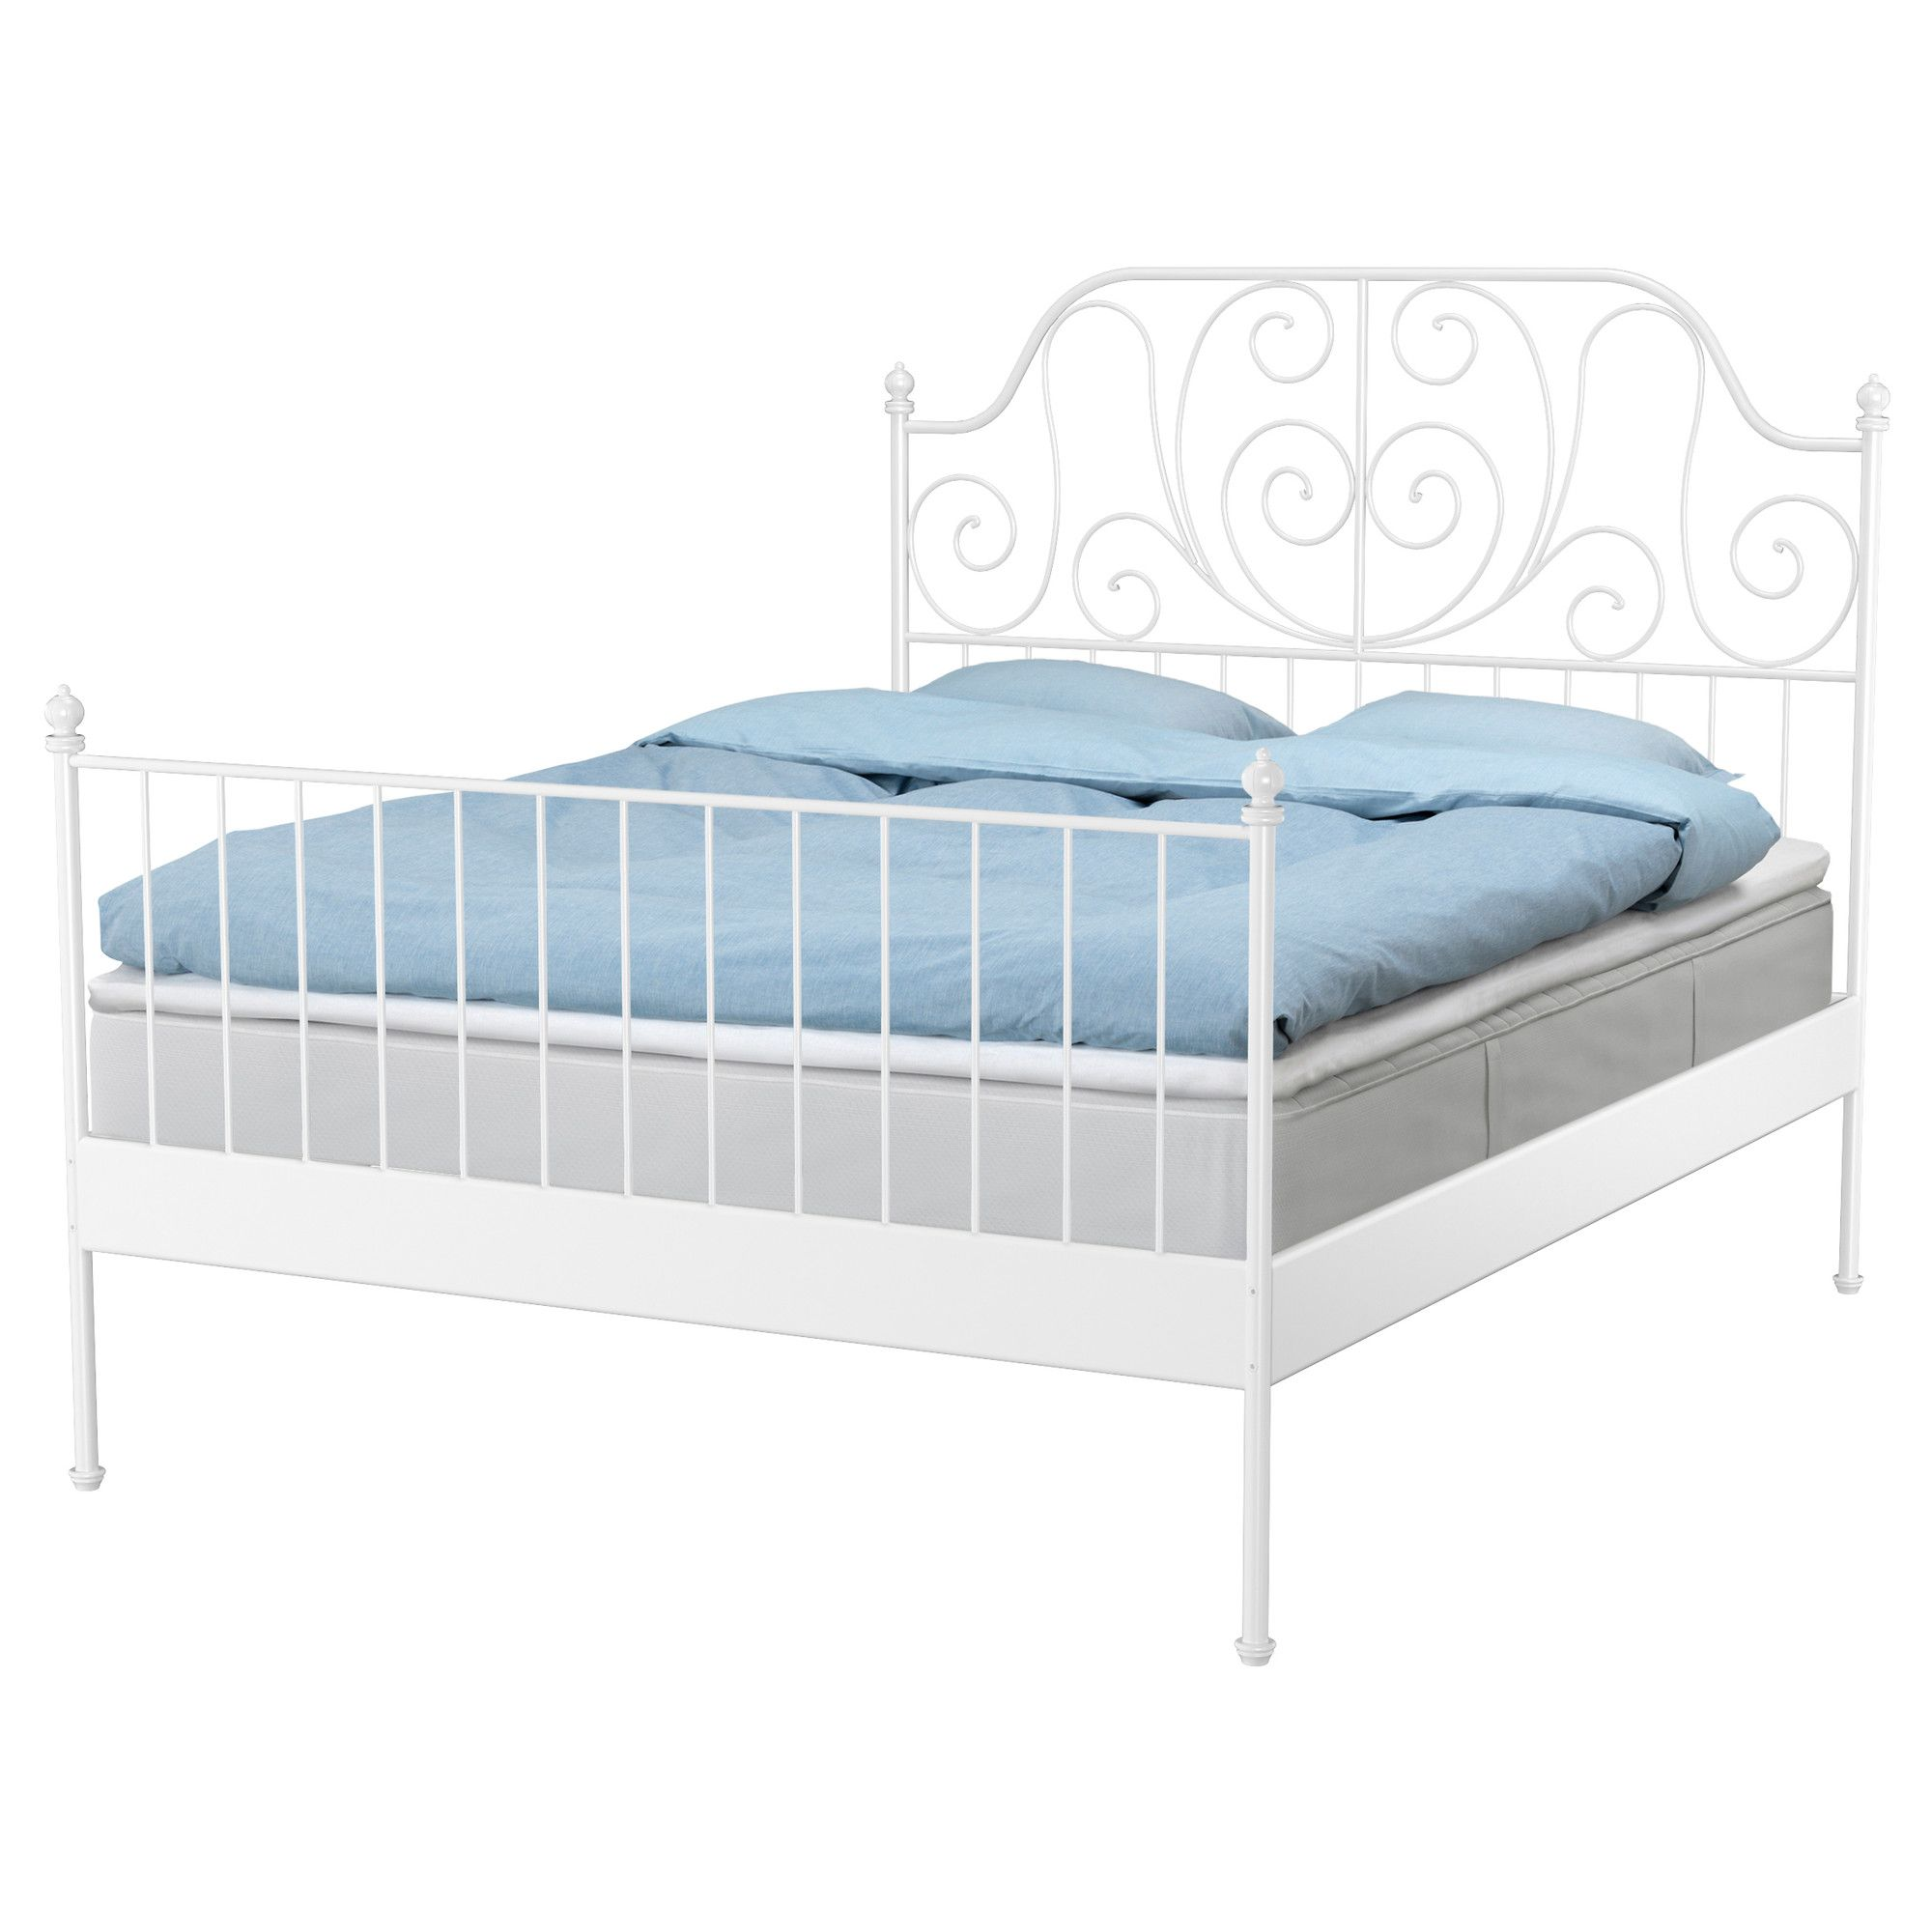 Ikea Us Furniture And Home Furnishings Ikea Bed Bedroom